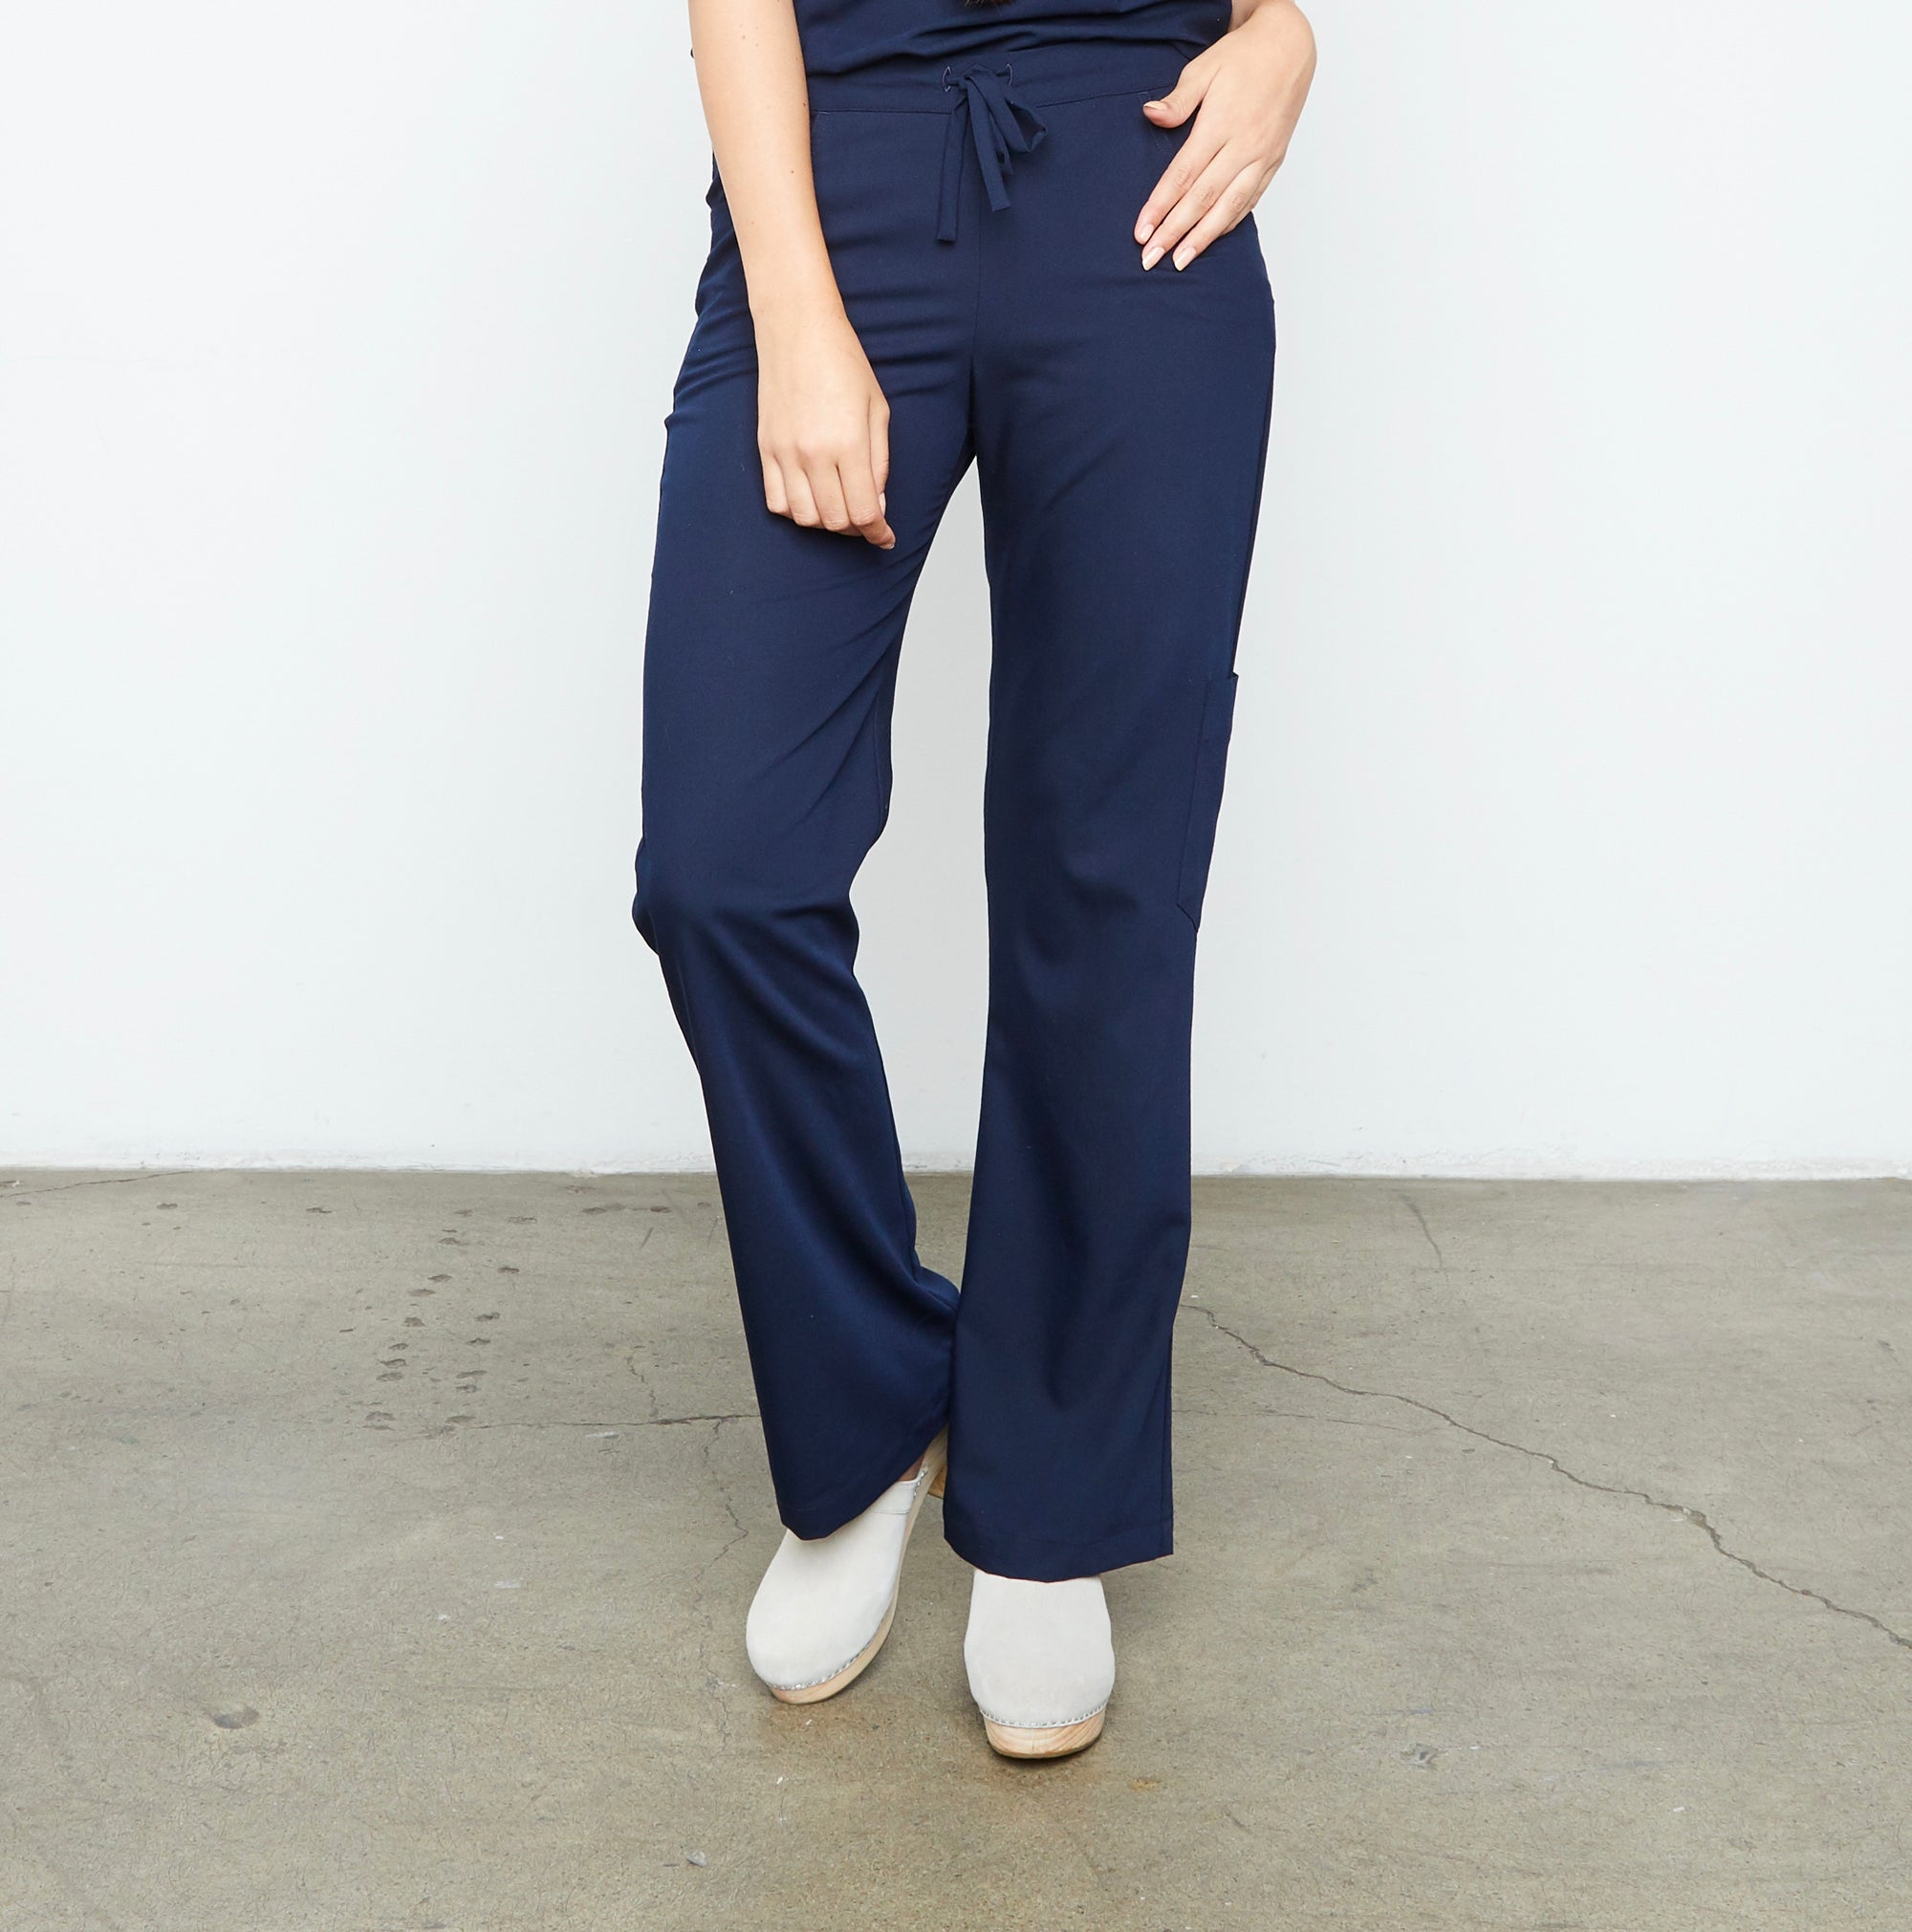 Maverick Pant - Petite (Really Dark Navy) XXS | Fabled makes beautiful high quality scrub pants for women. Scrubs fashion for women doctors and female medical workers.